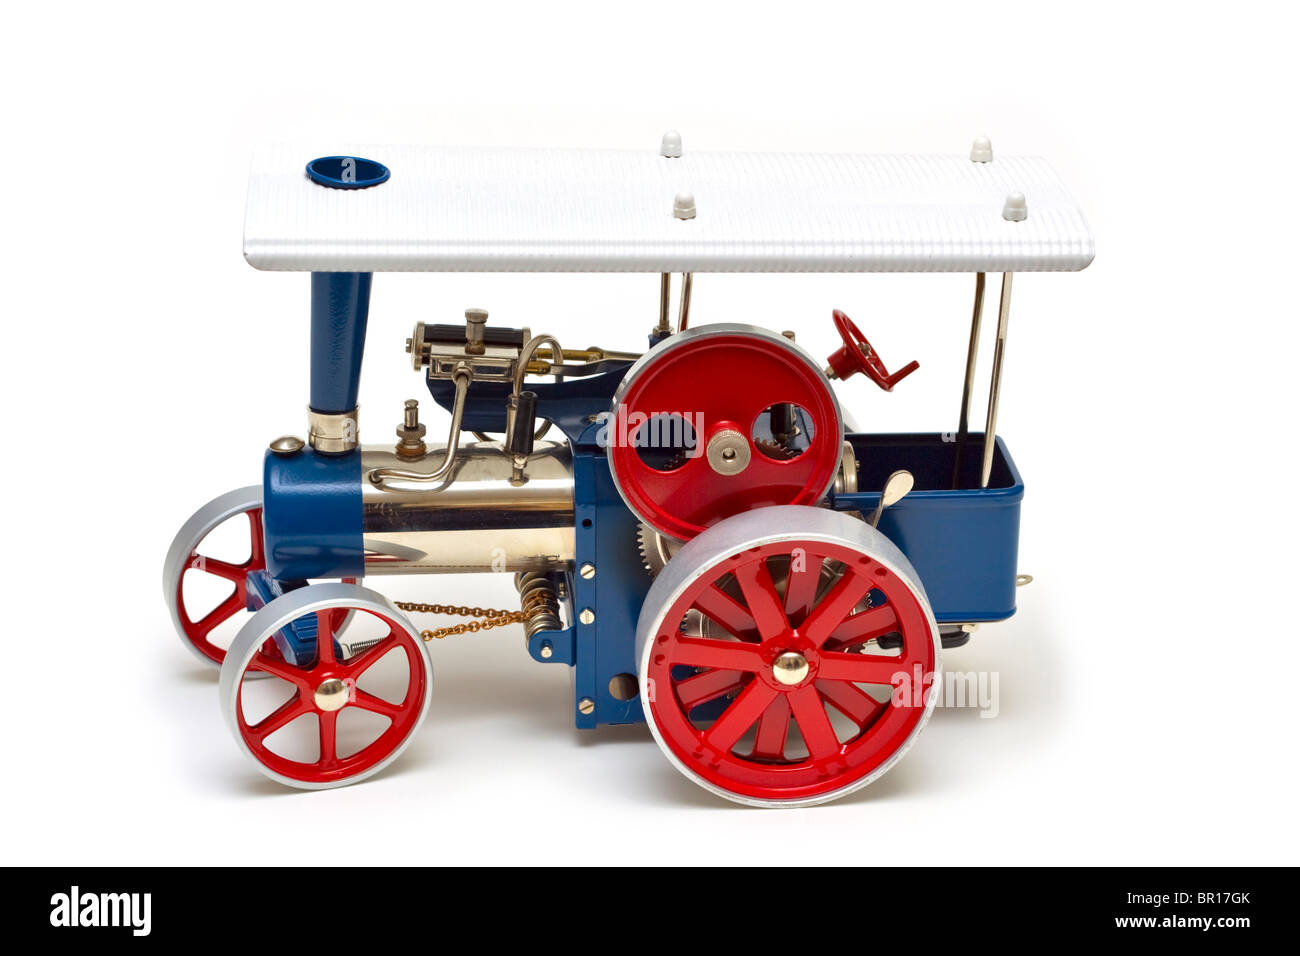 Model steam traction engine - Stock Image